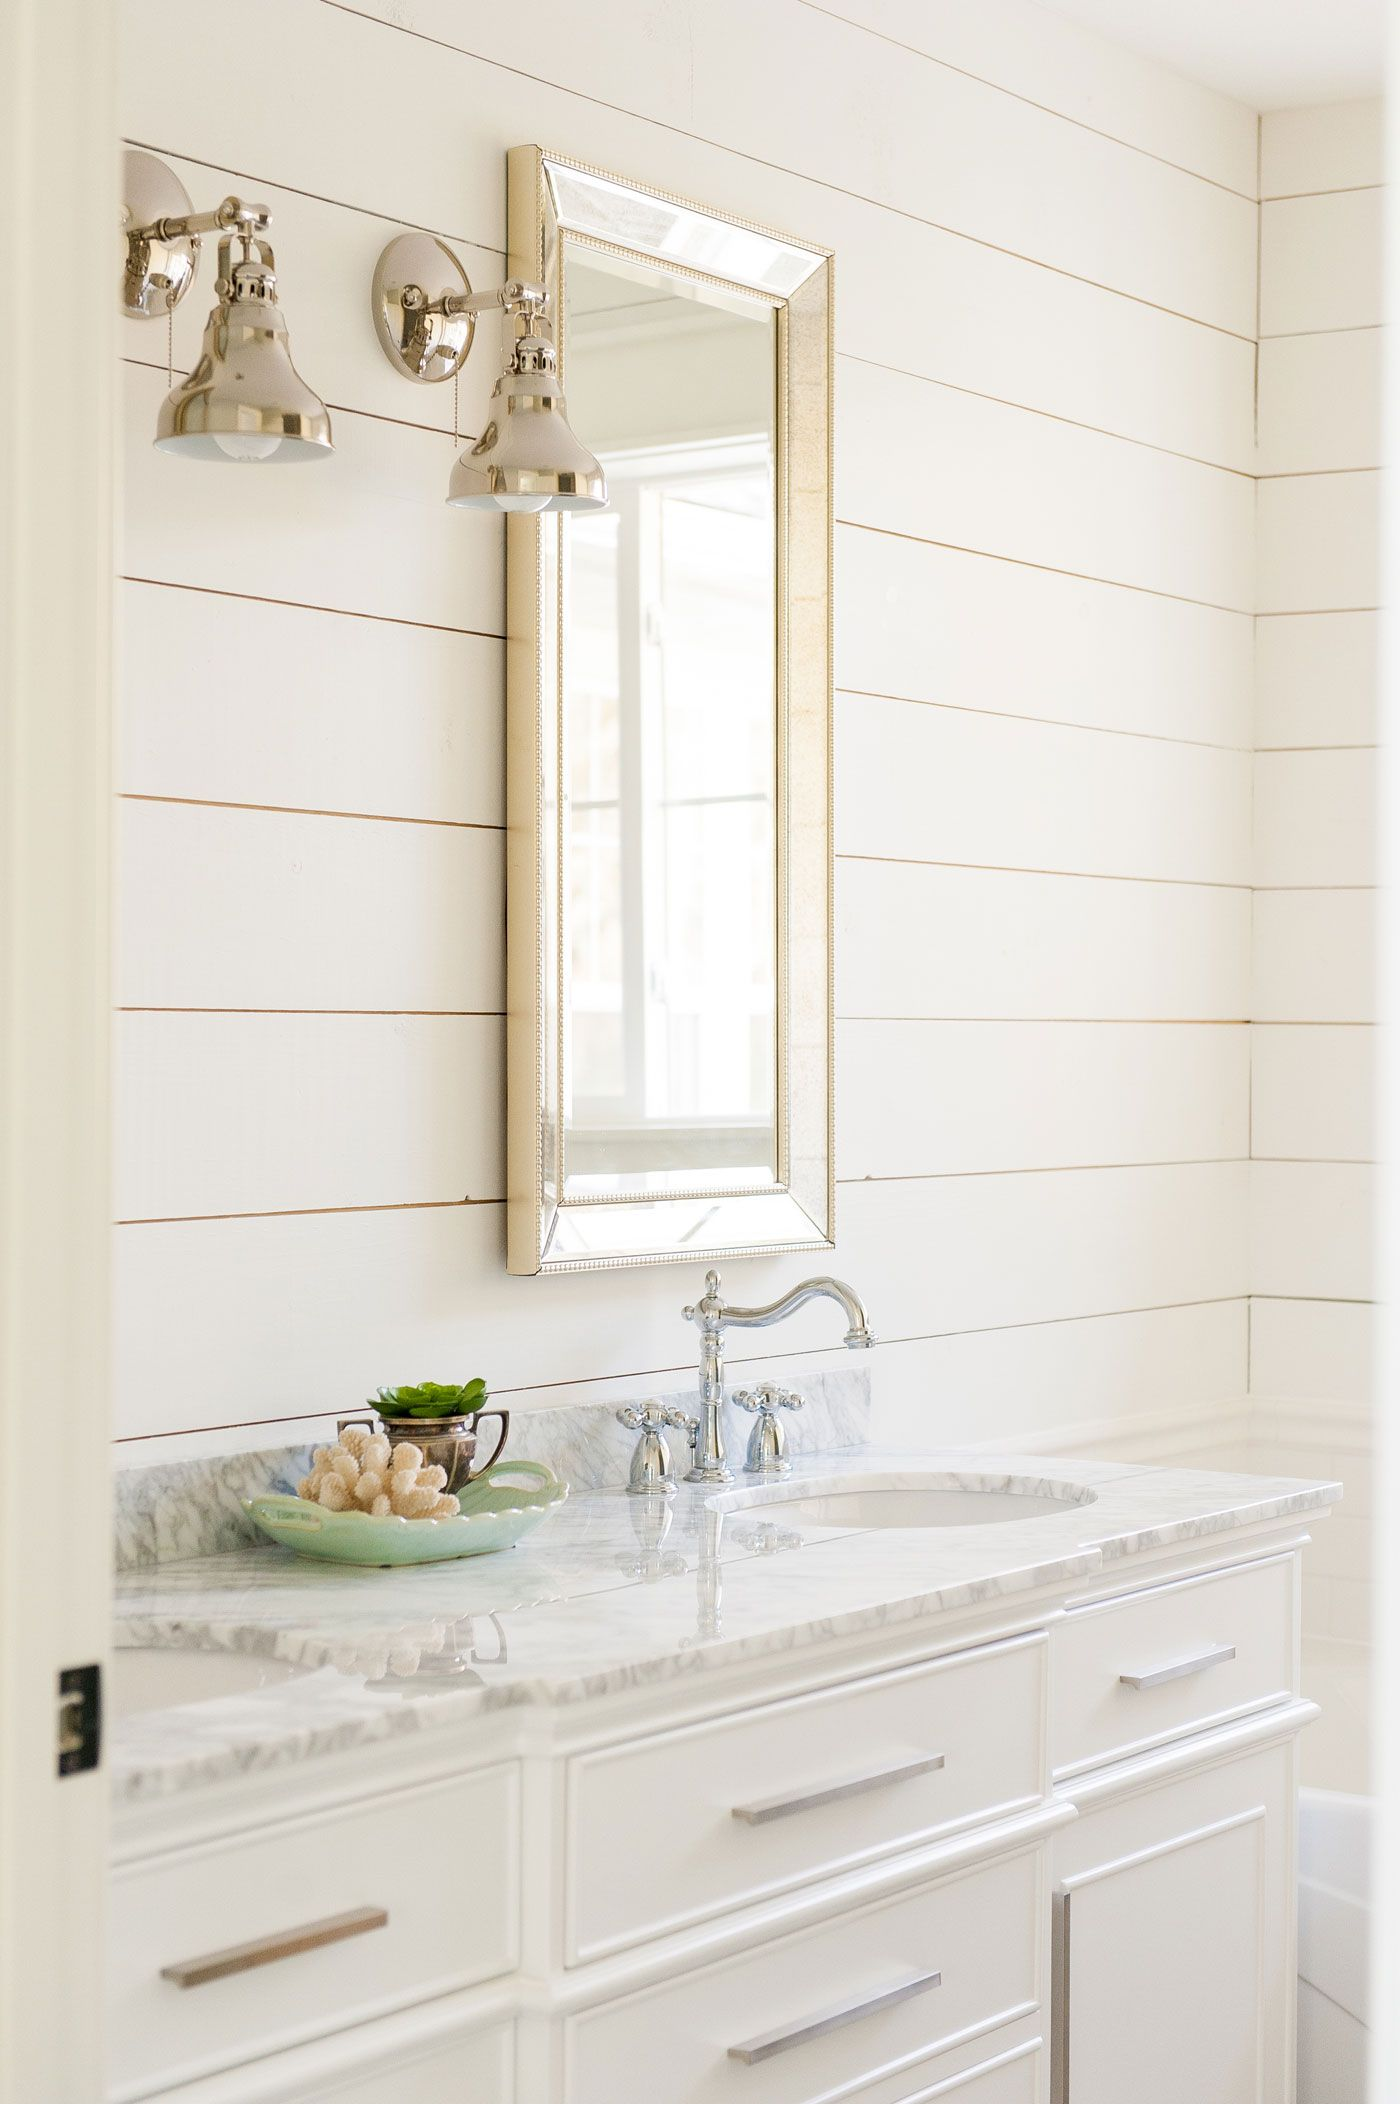 White Paint Colors: 5 Favorites for Shiplap | Bath Ideas | Pinterest ...